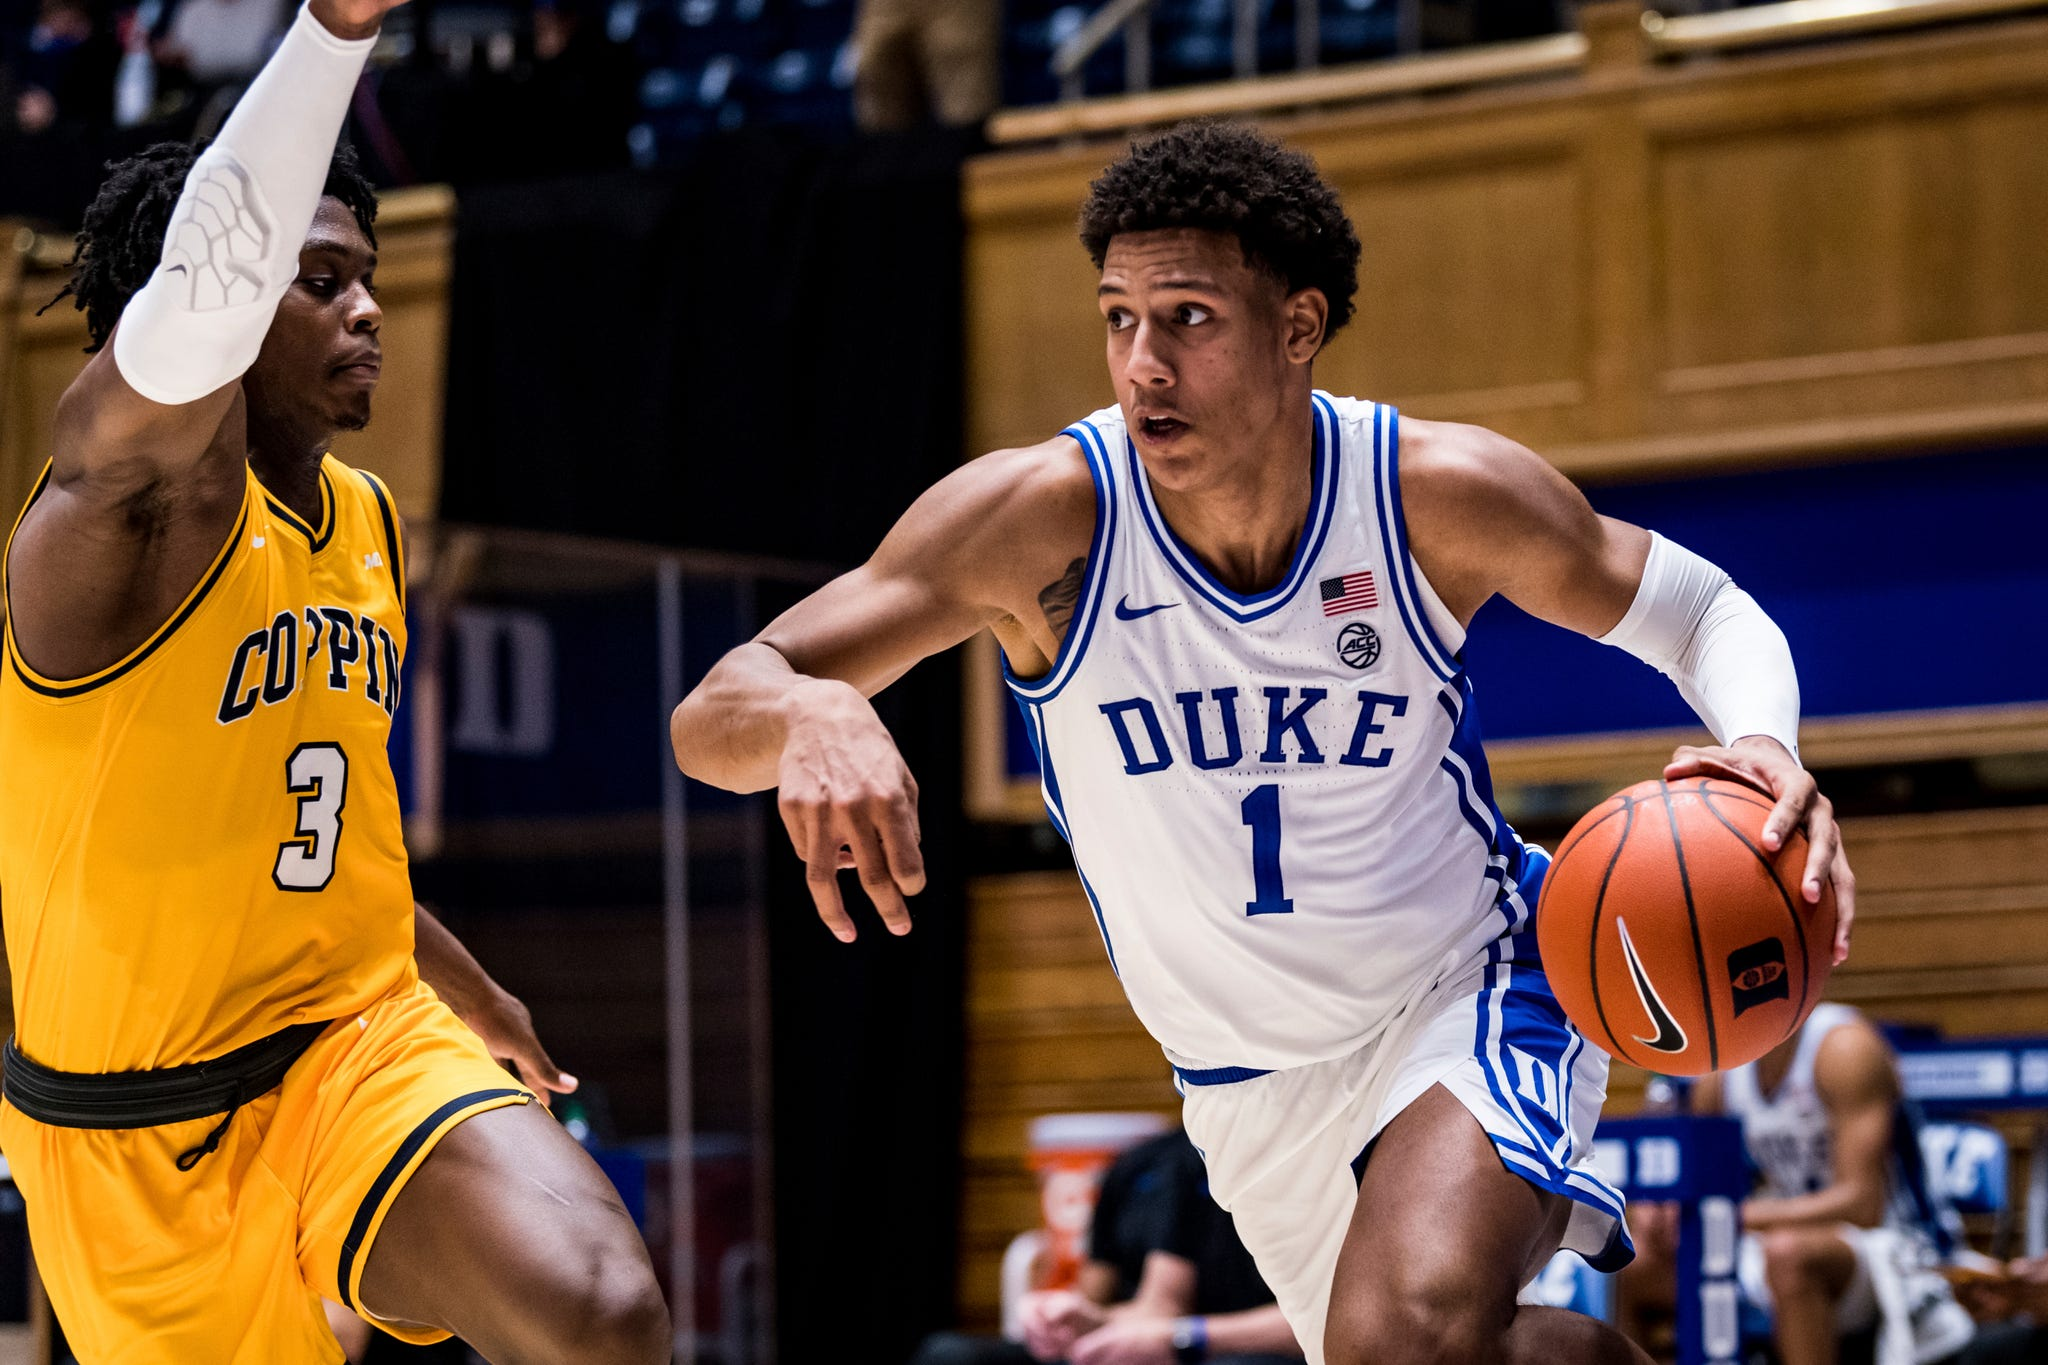 Duke freshman Jalen Johnson out indefinitely with a foot injury